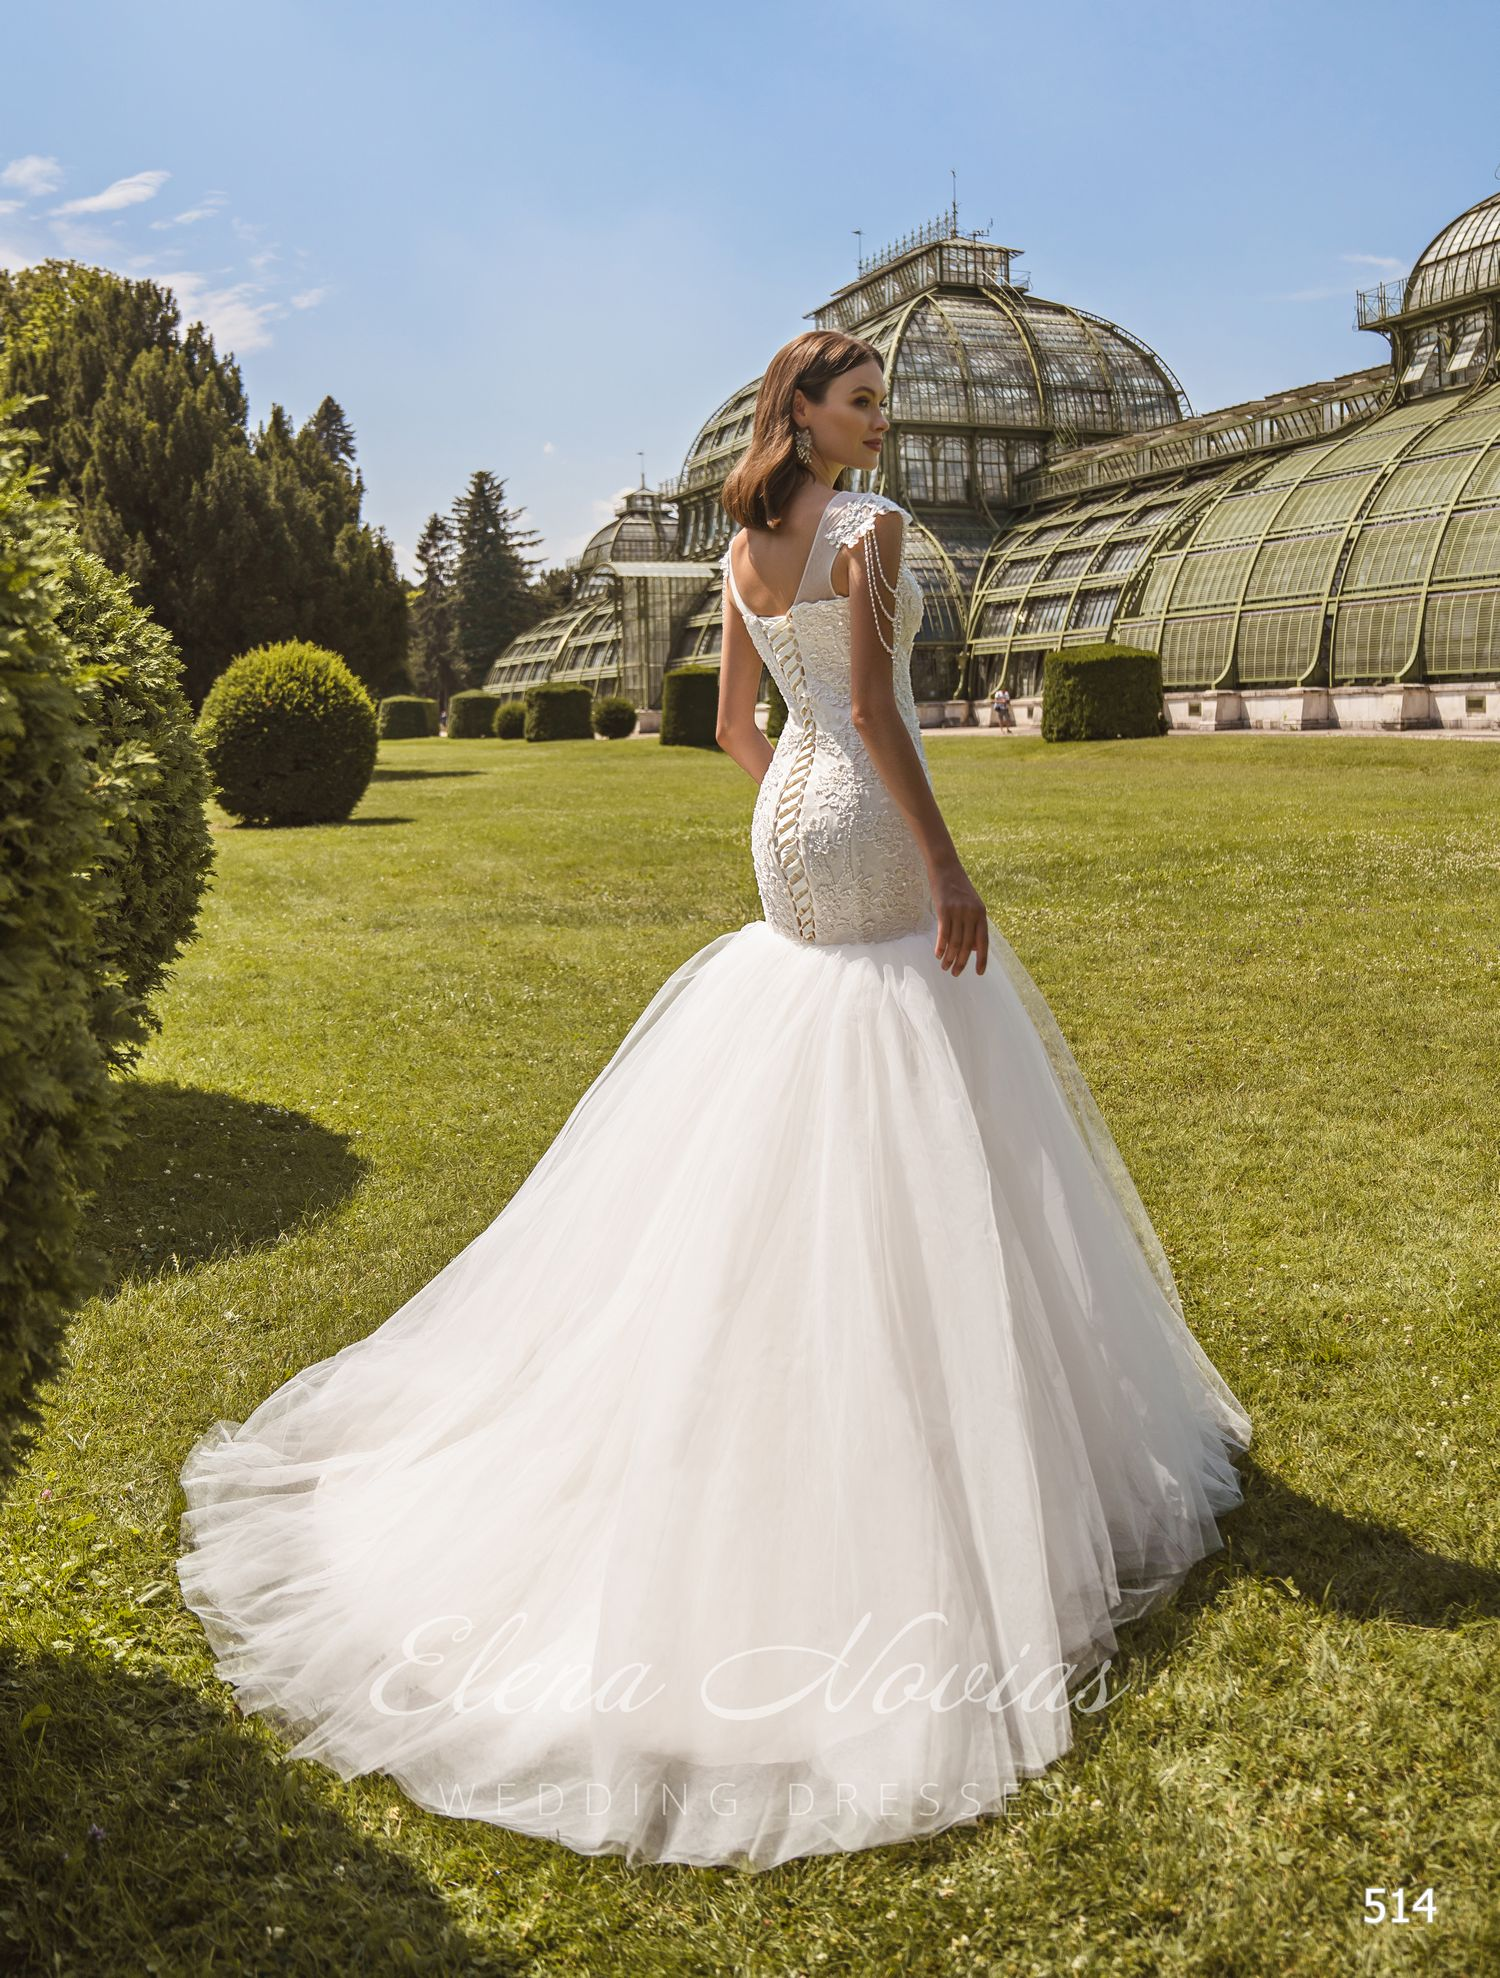 Wedding dresses 514 2